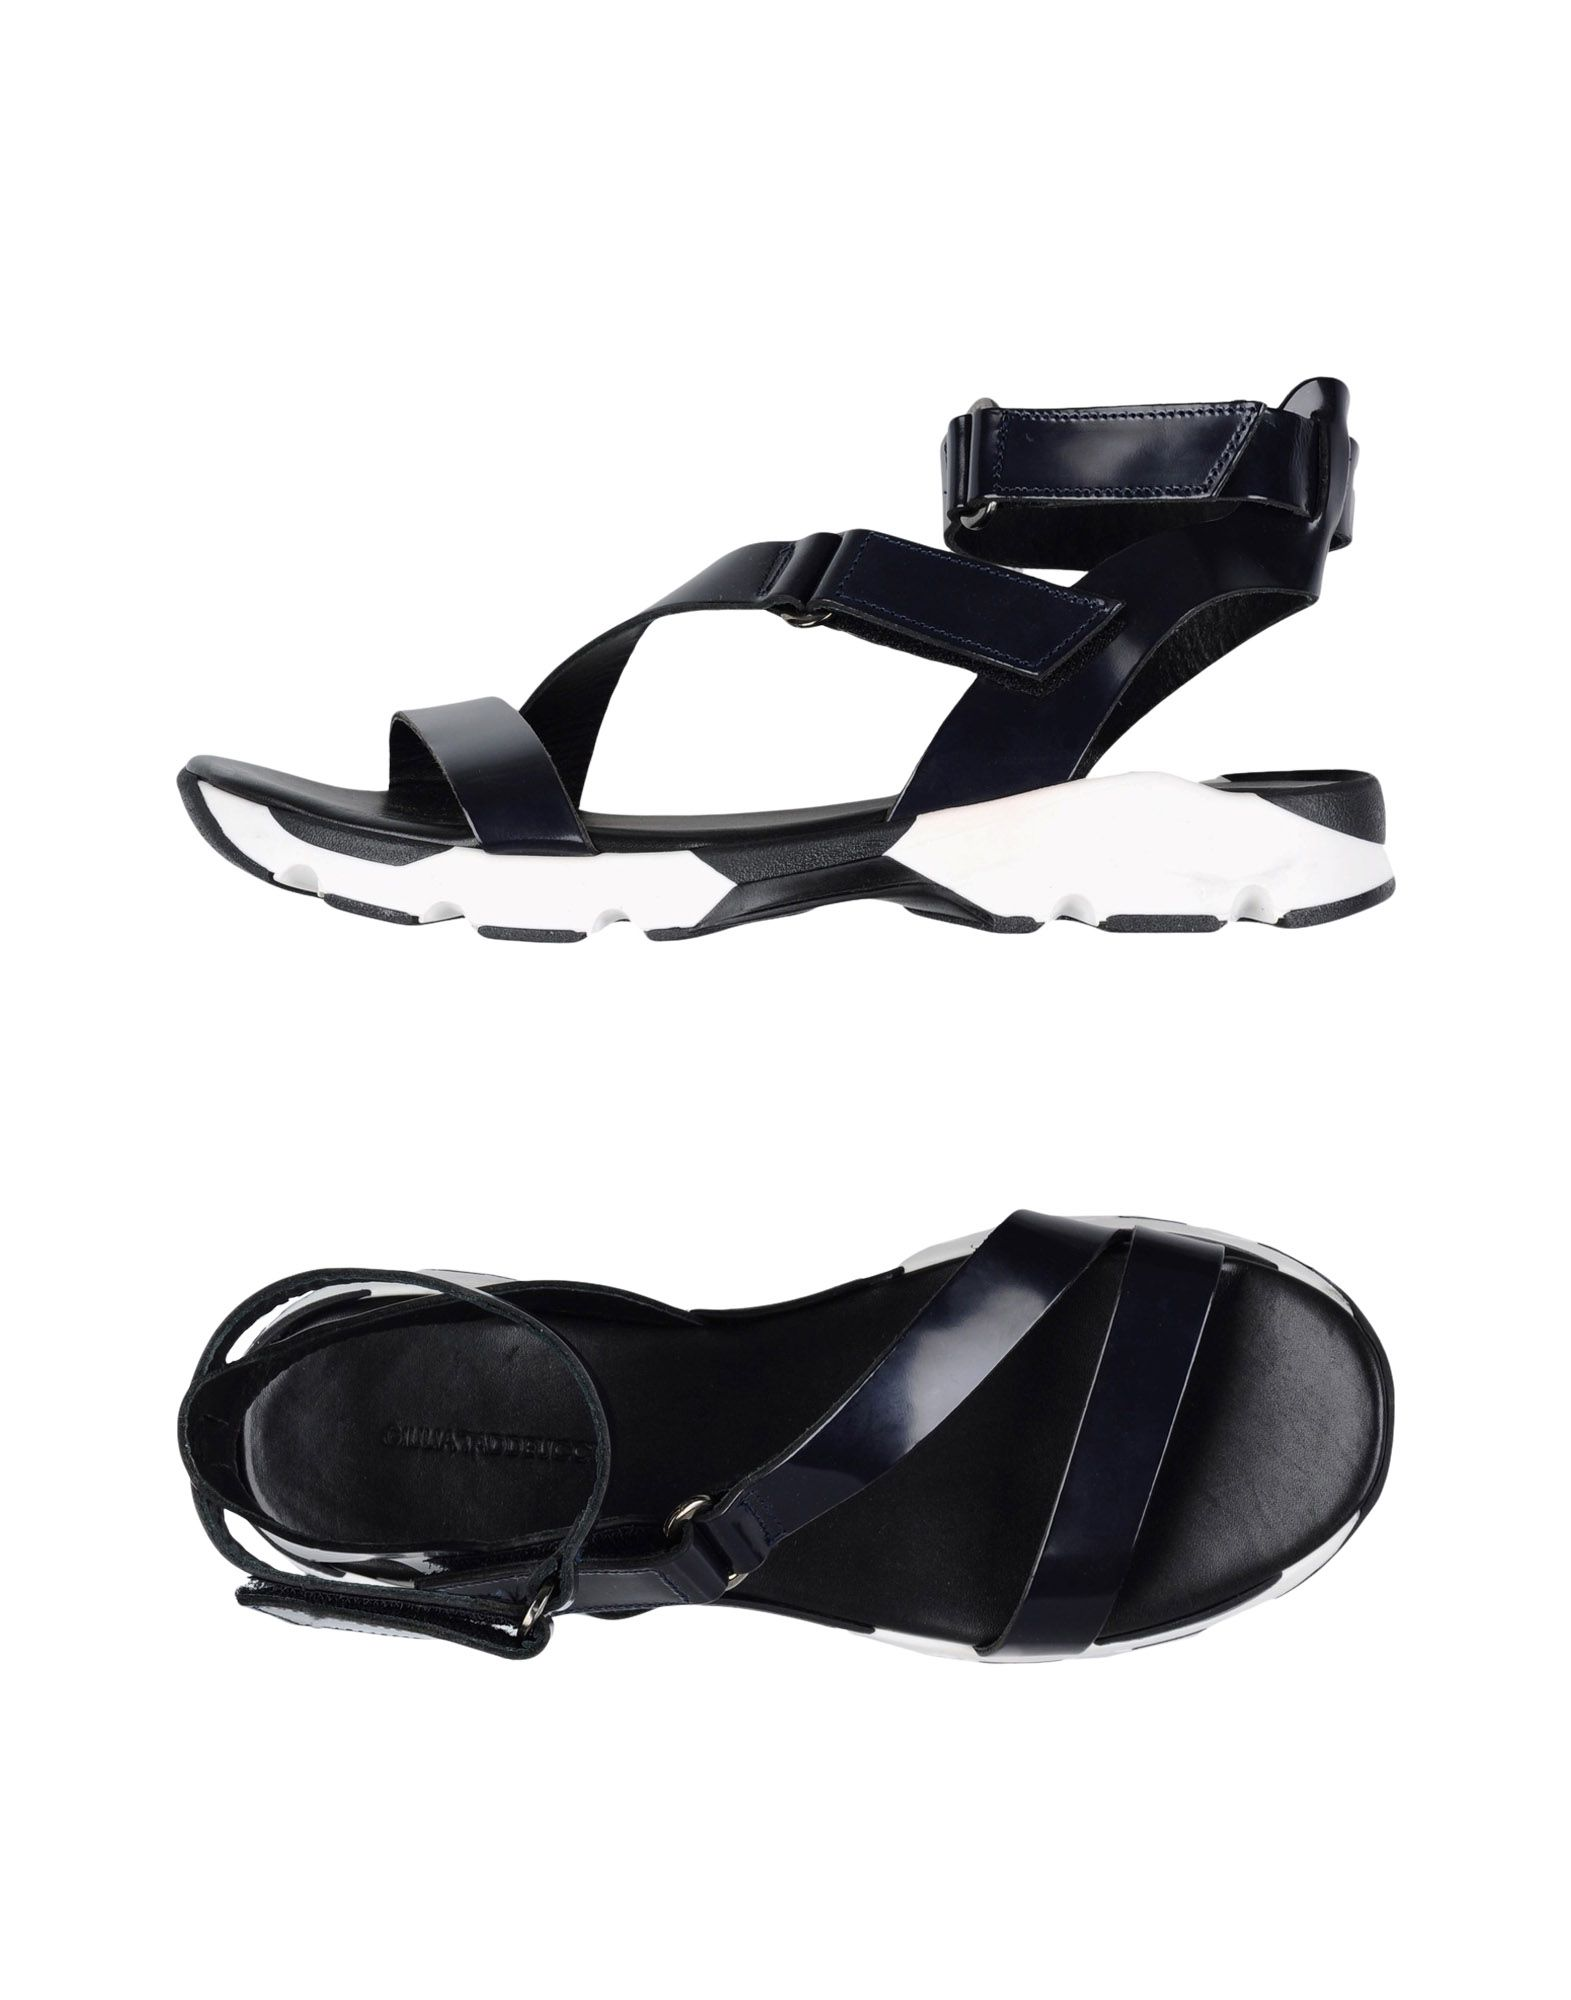 Chaussures - Sandales Giulia Taddeucci gRxwYf